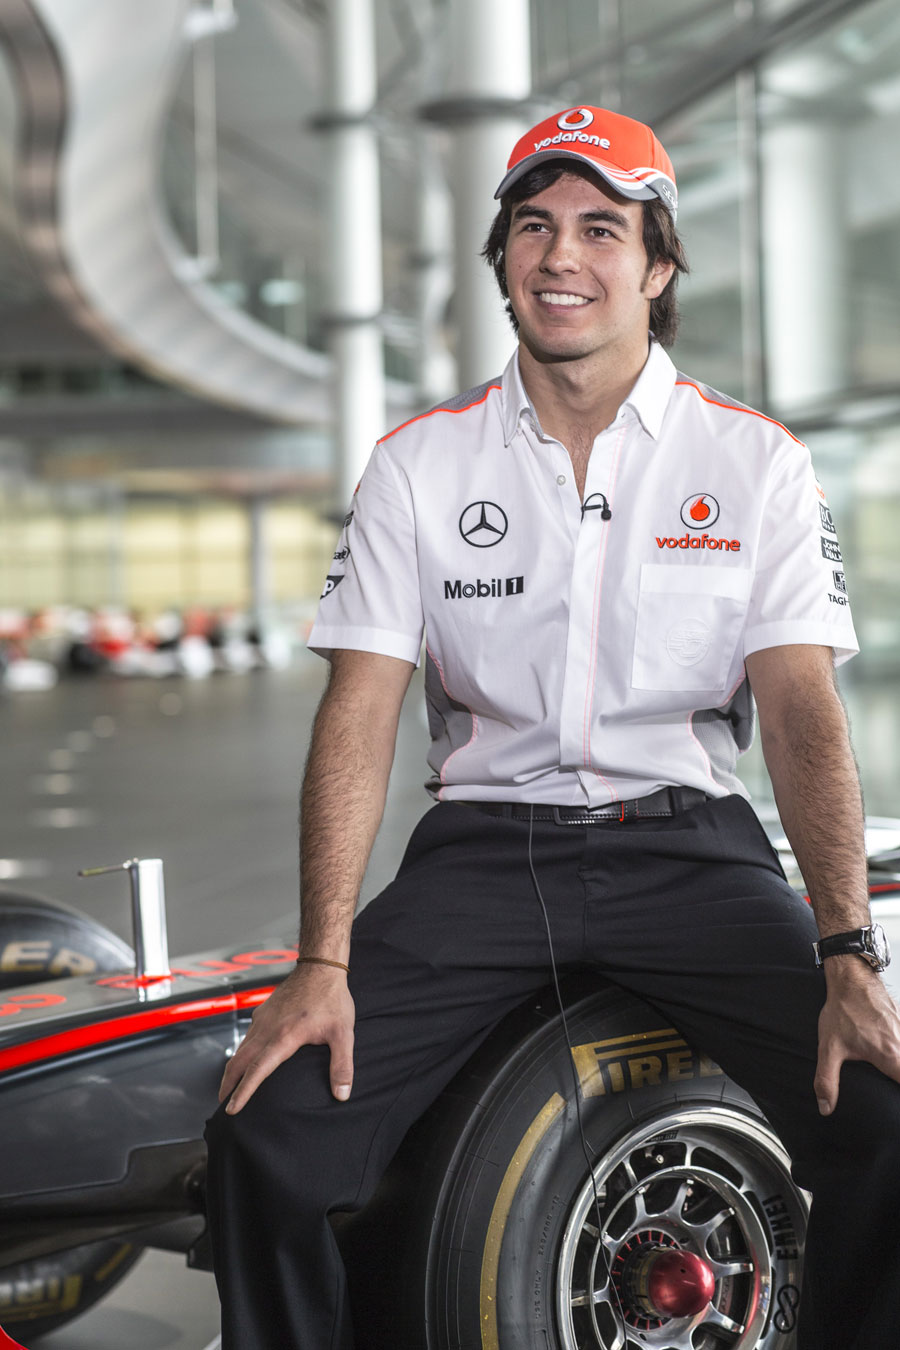 Sergio Perez faces the press on his first day at McLaren